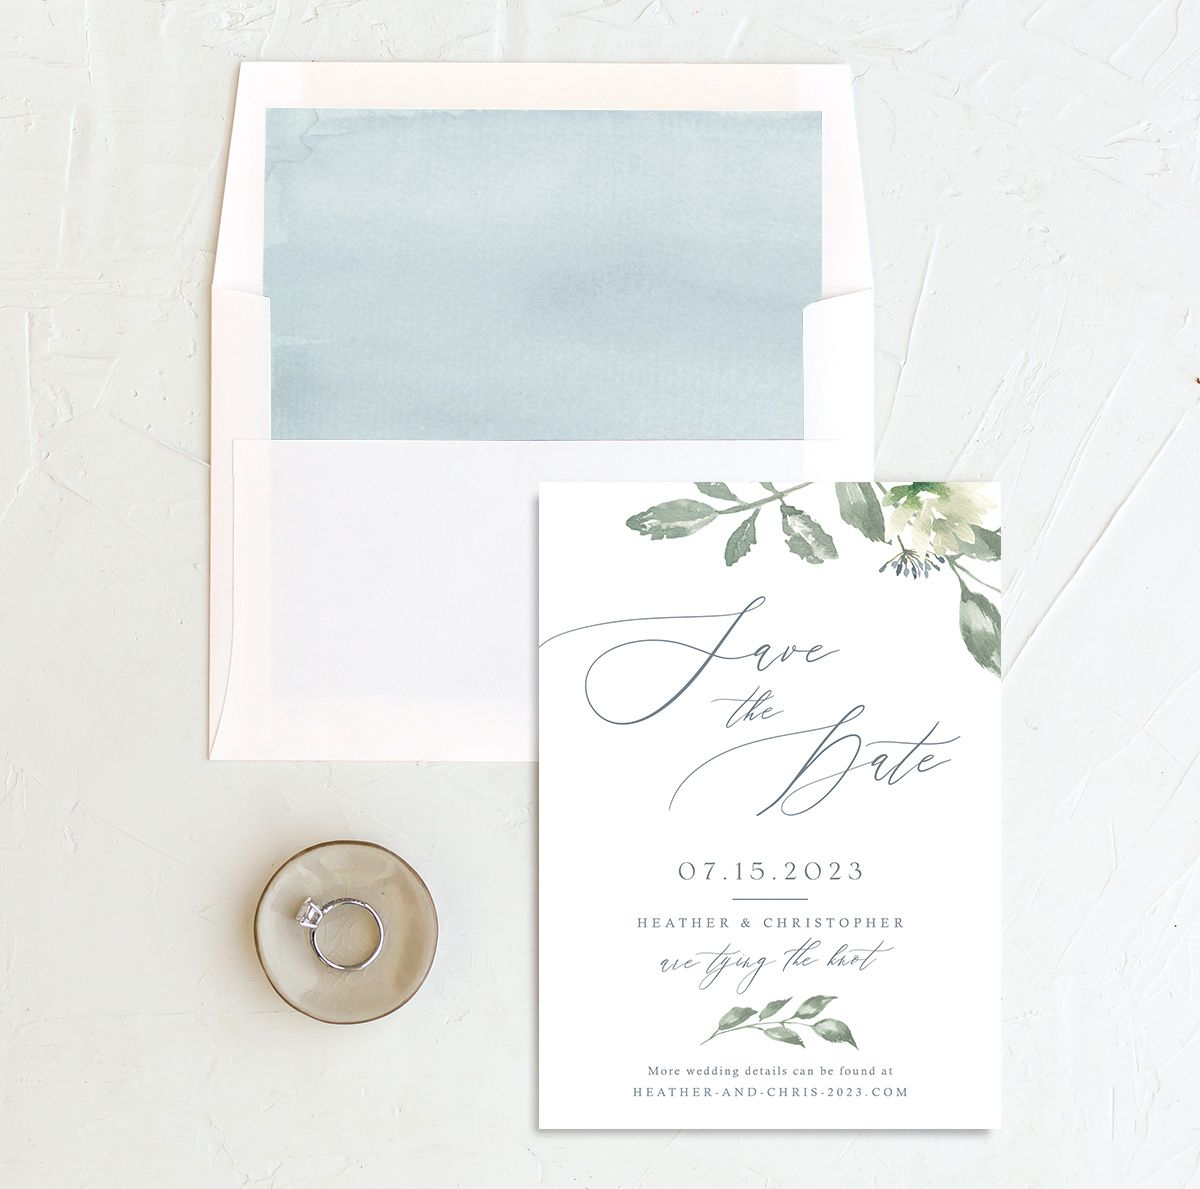 Dusted Calligraphy Wedding Save the Date Card Front and Envelope Liner Blue